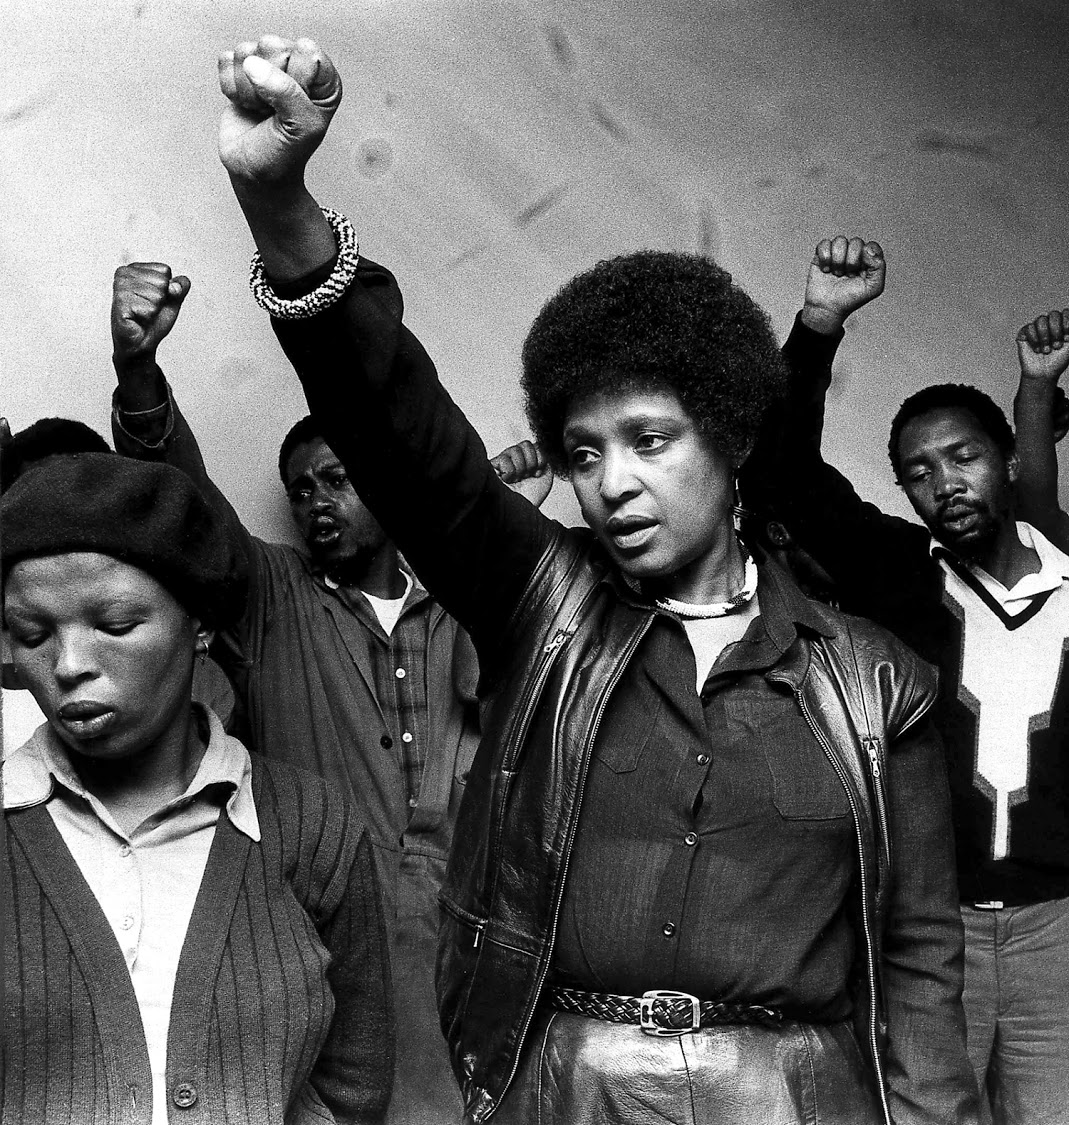 Life-long friend of Winnie Madikizela-Mandela speaks of her humanity and fearlessness